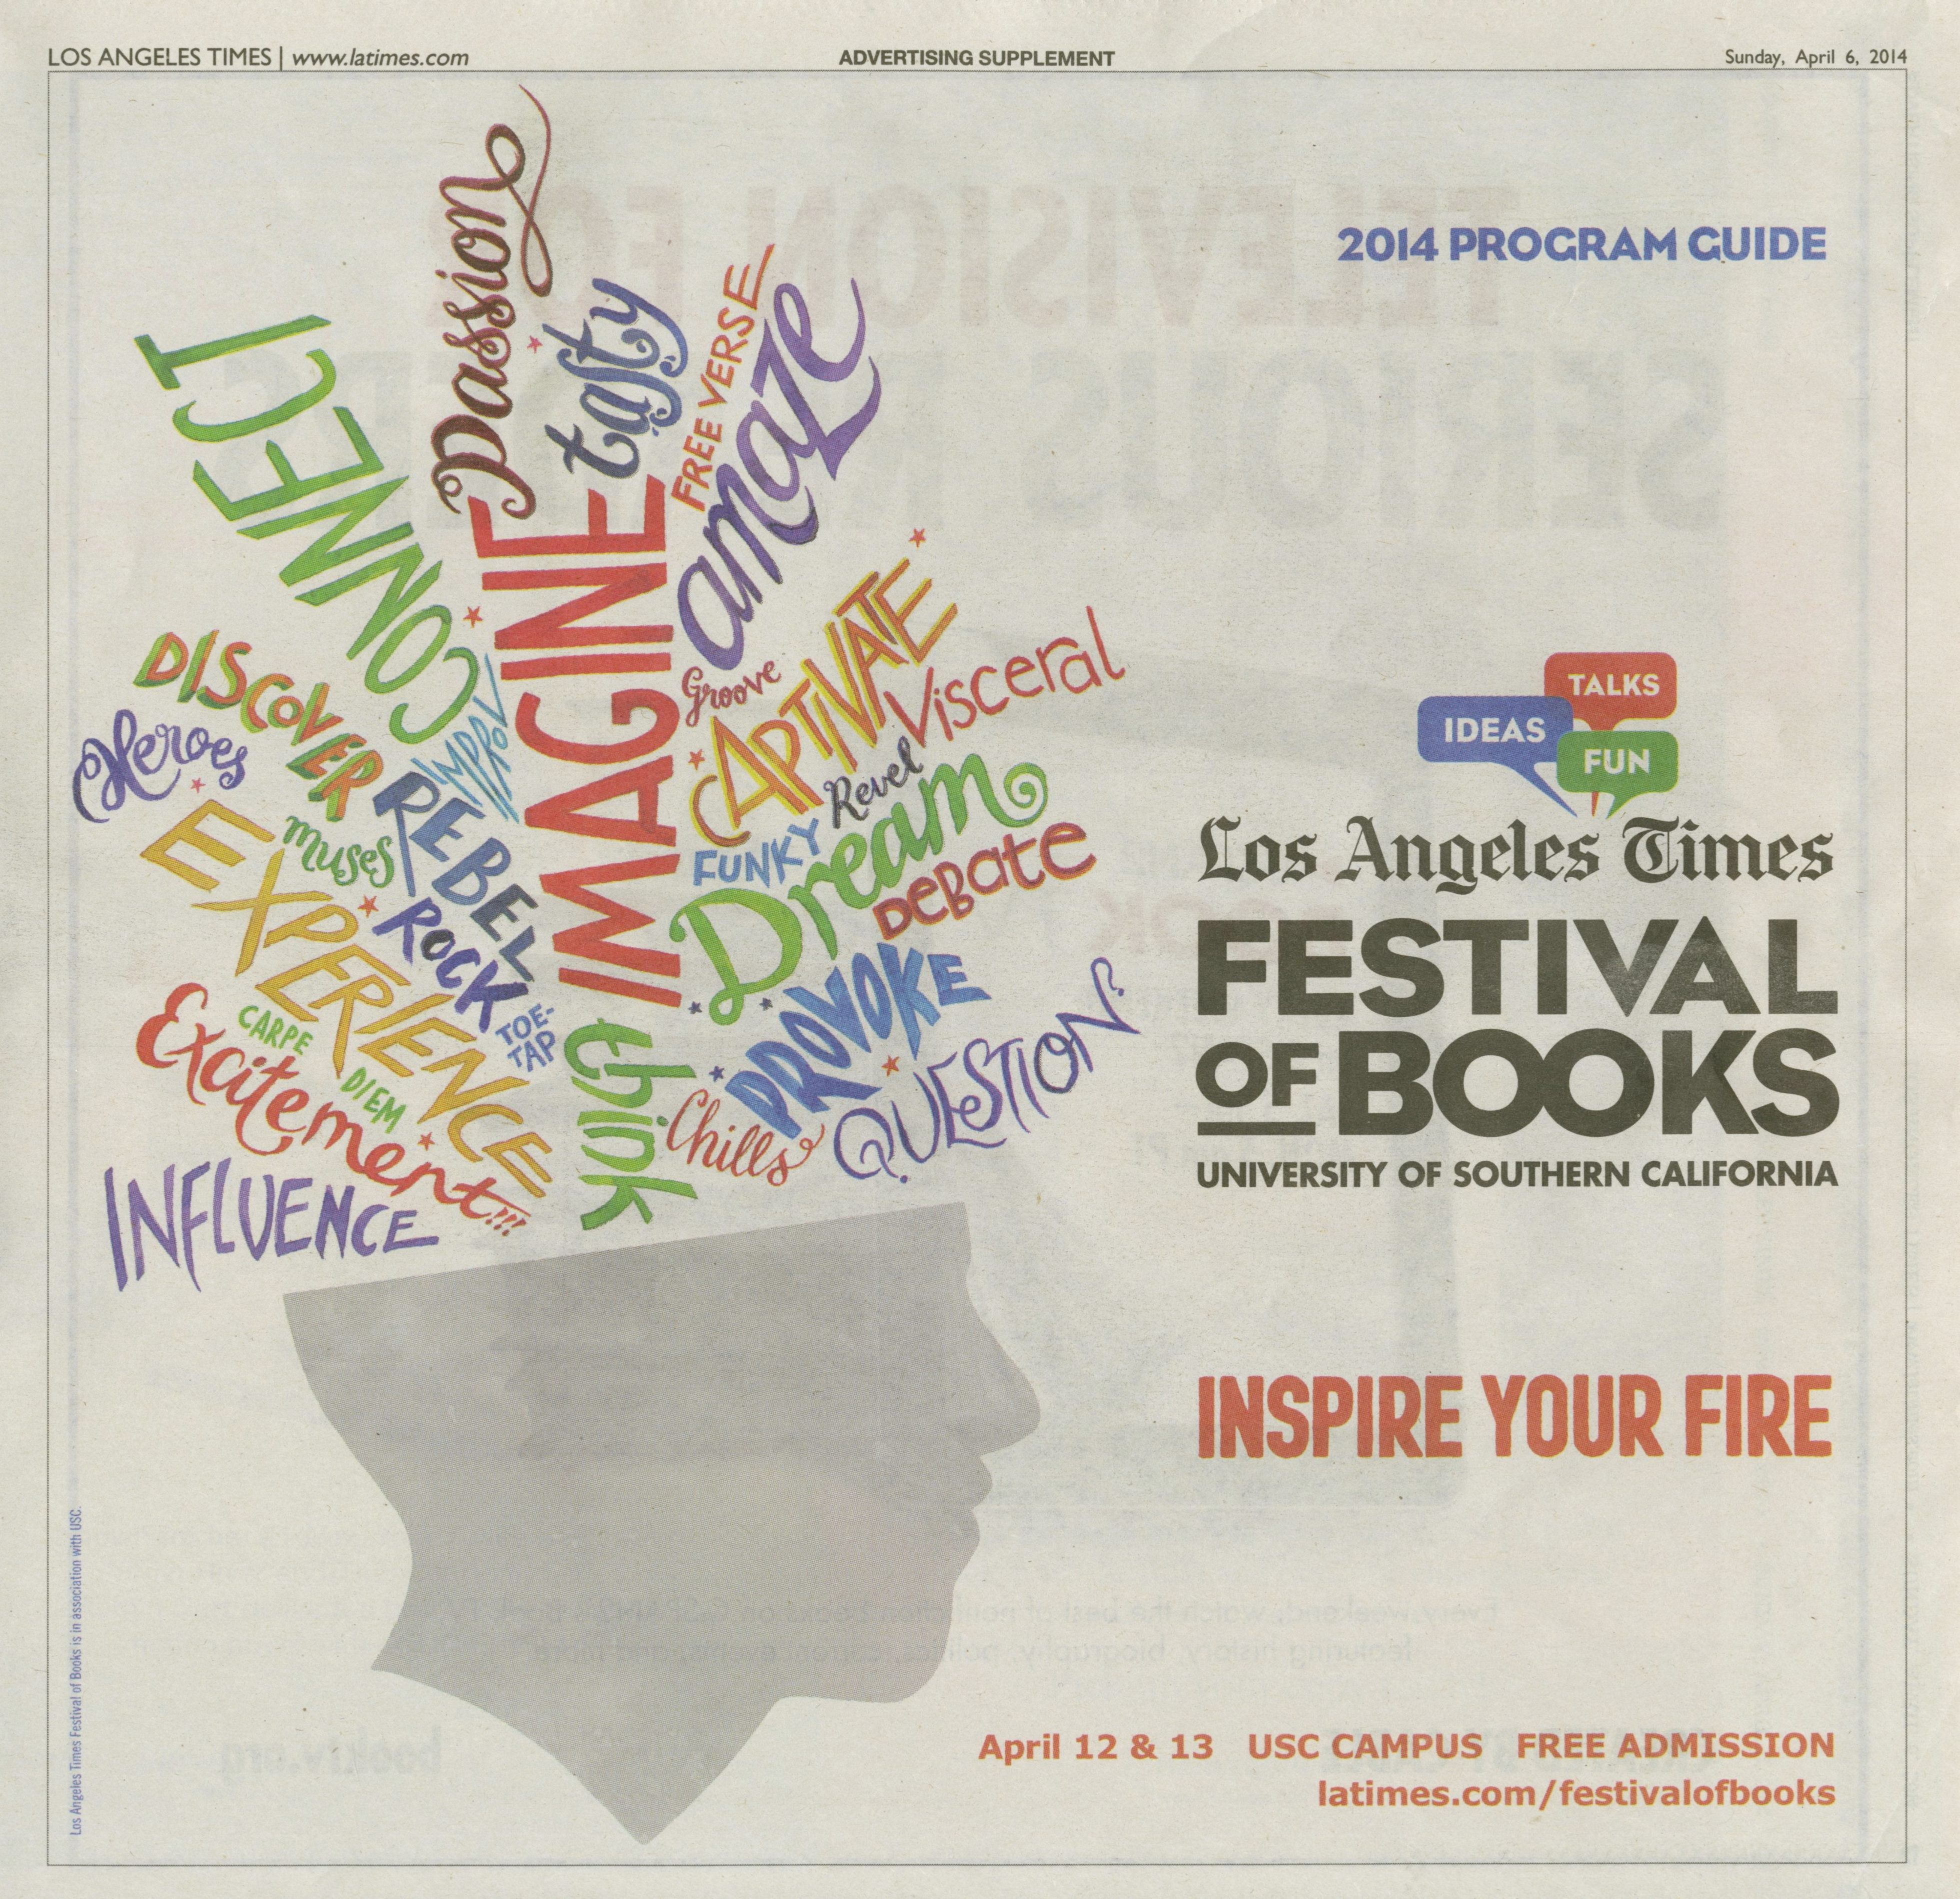 Los Angeles Times: Los Angeles Times Festival Of Books